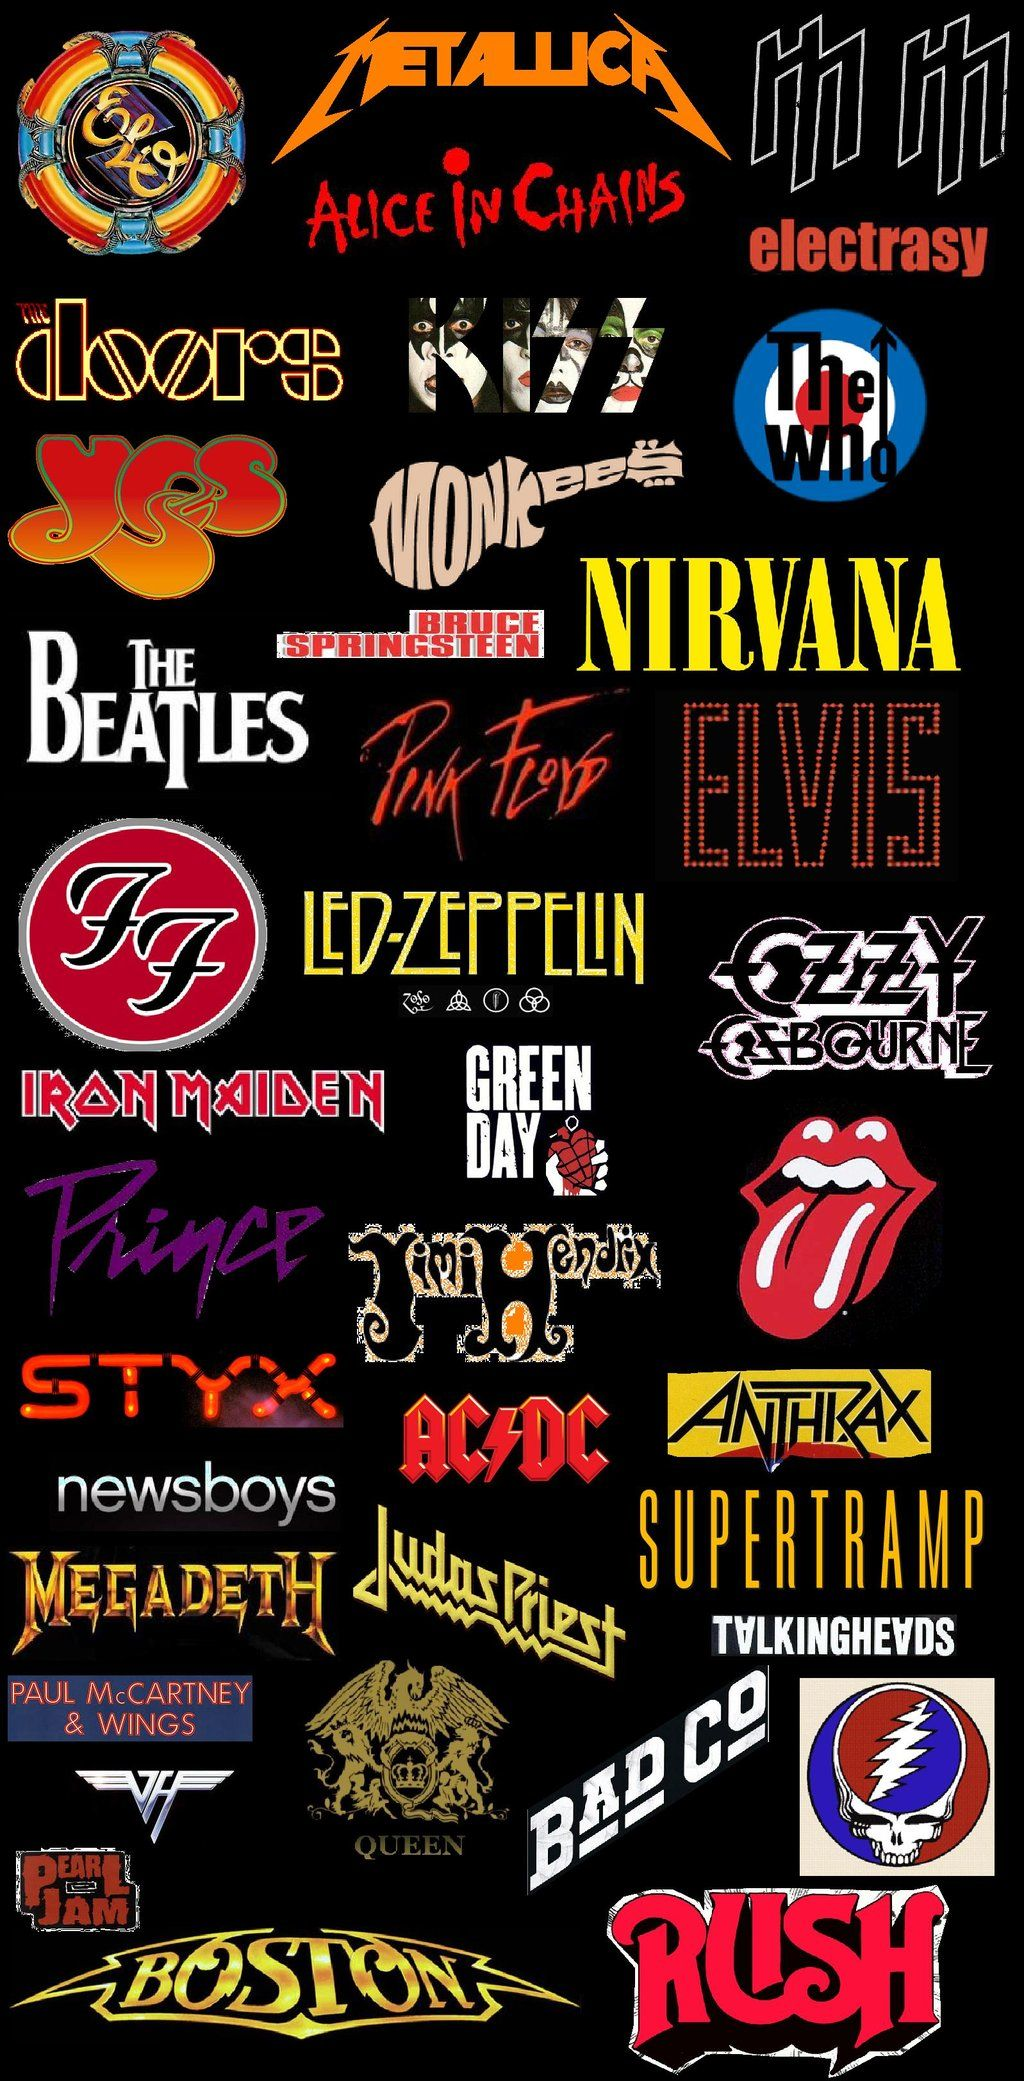 Classic Rock Revolution Logos Stocking Stride by EspioArtwork on DeviantArt